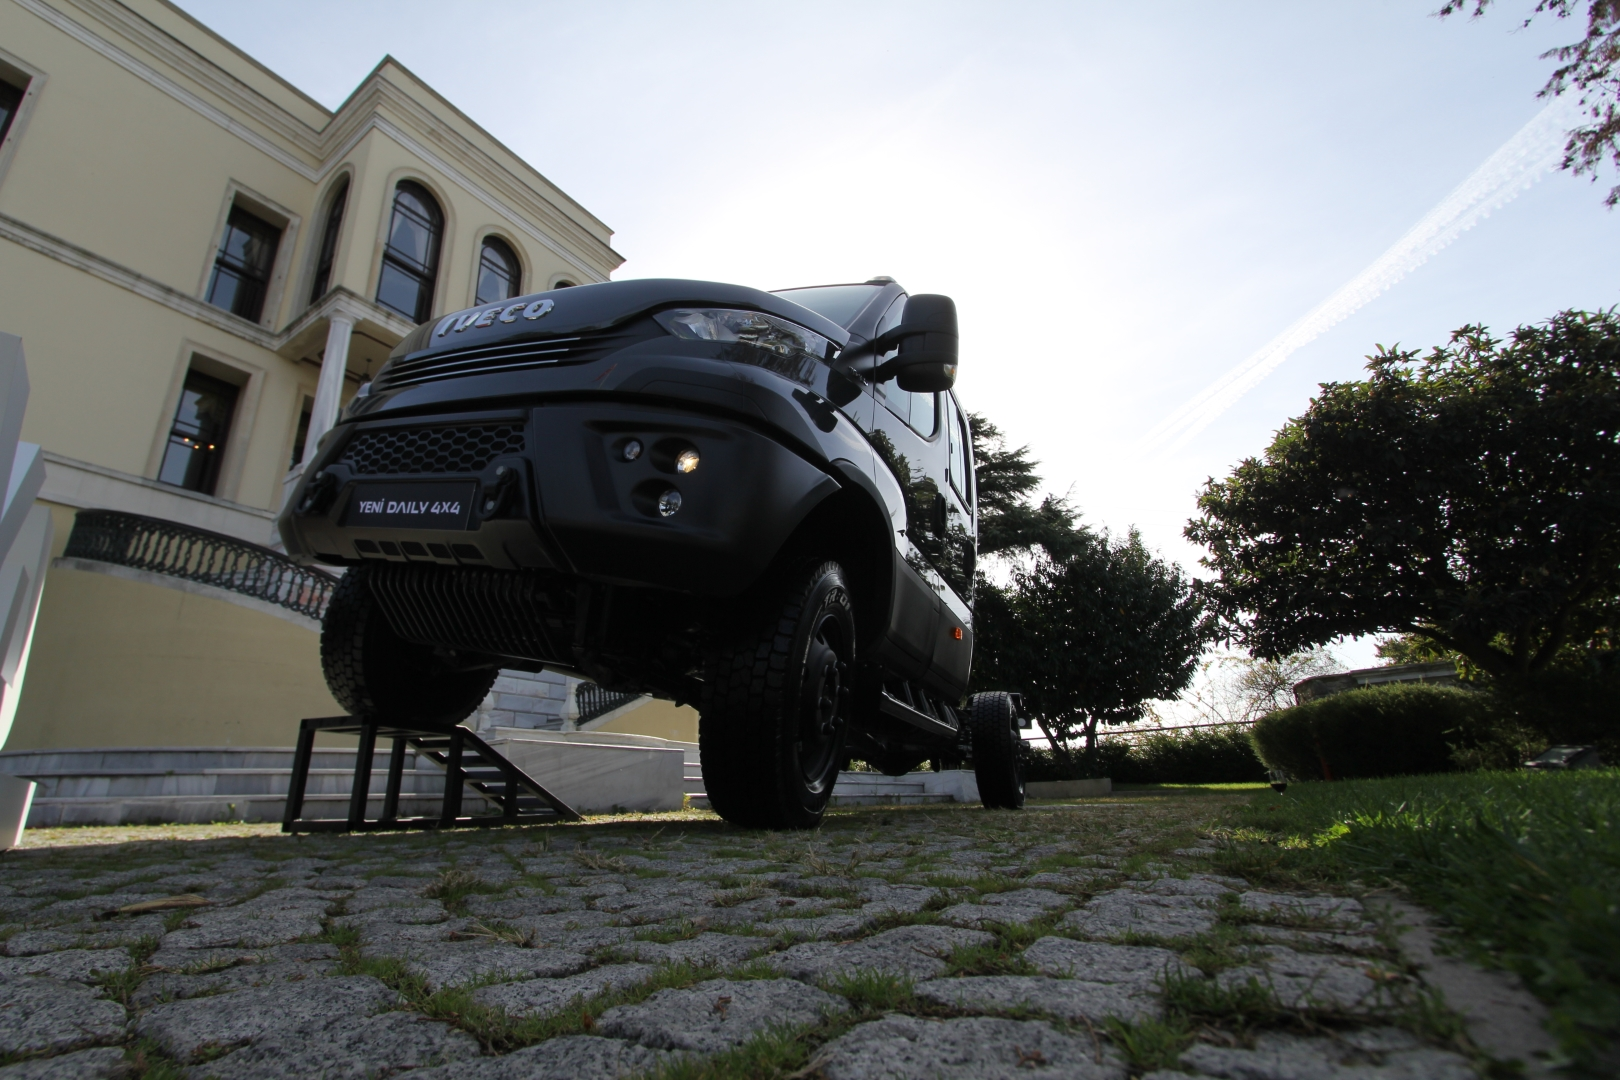 iveco-daily-4x4-(13).jpg